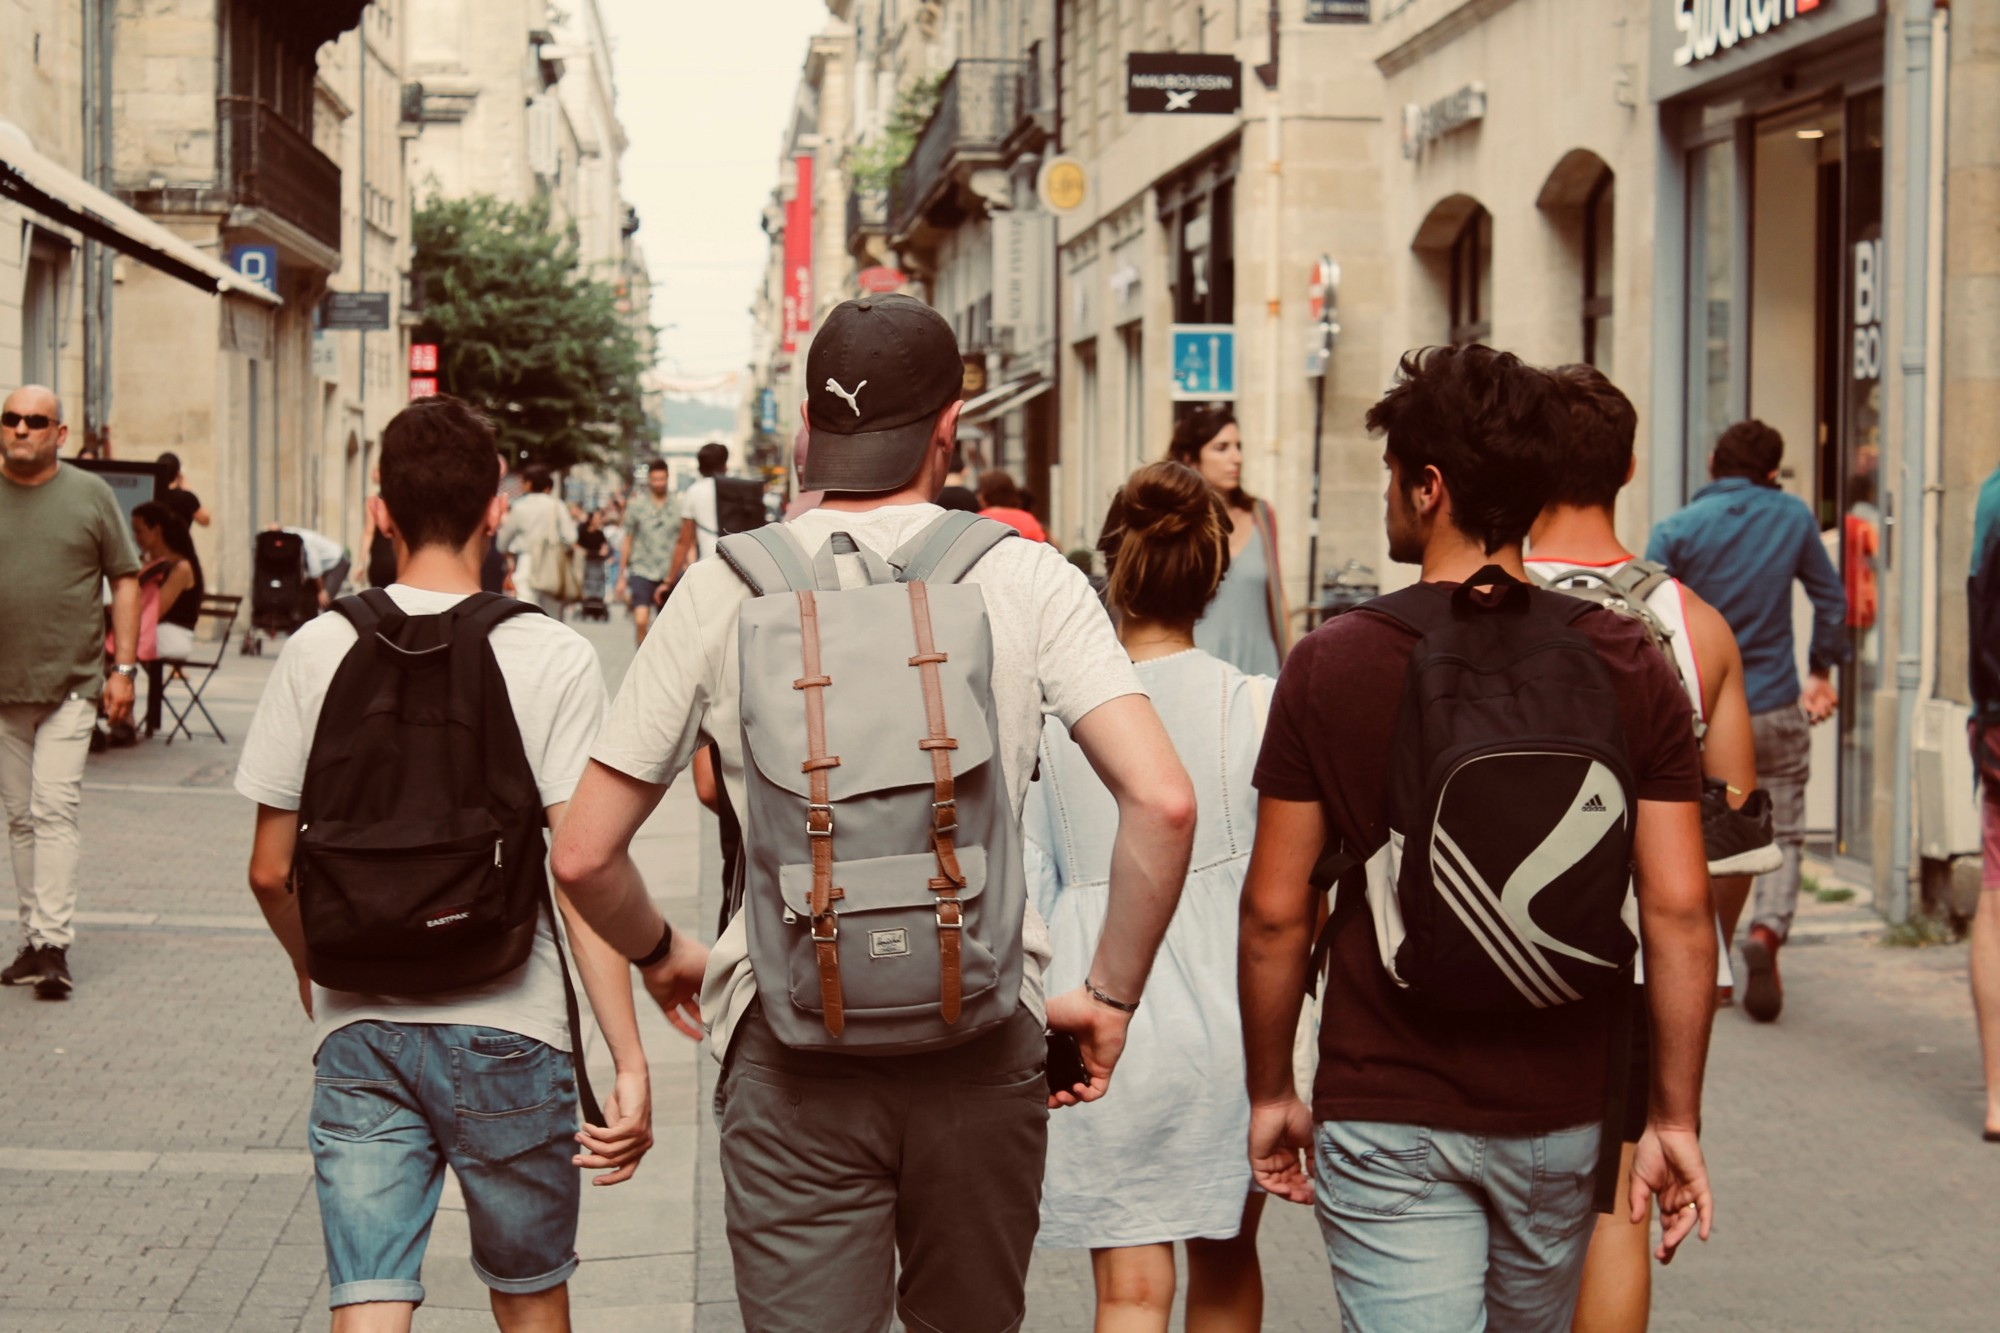 Teenagers walking down a street displaying various brand names on their bags and hats.